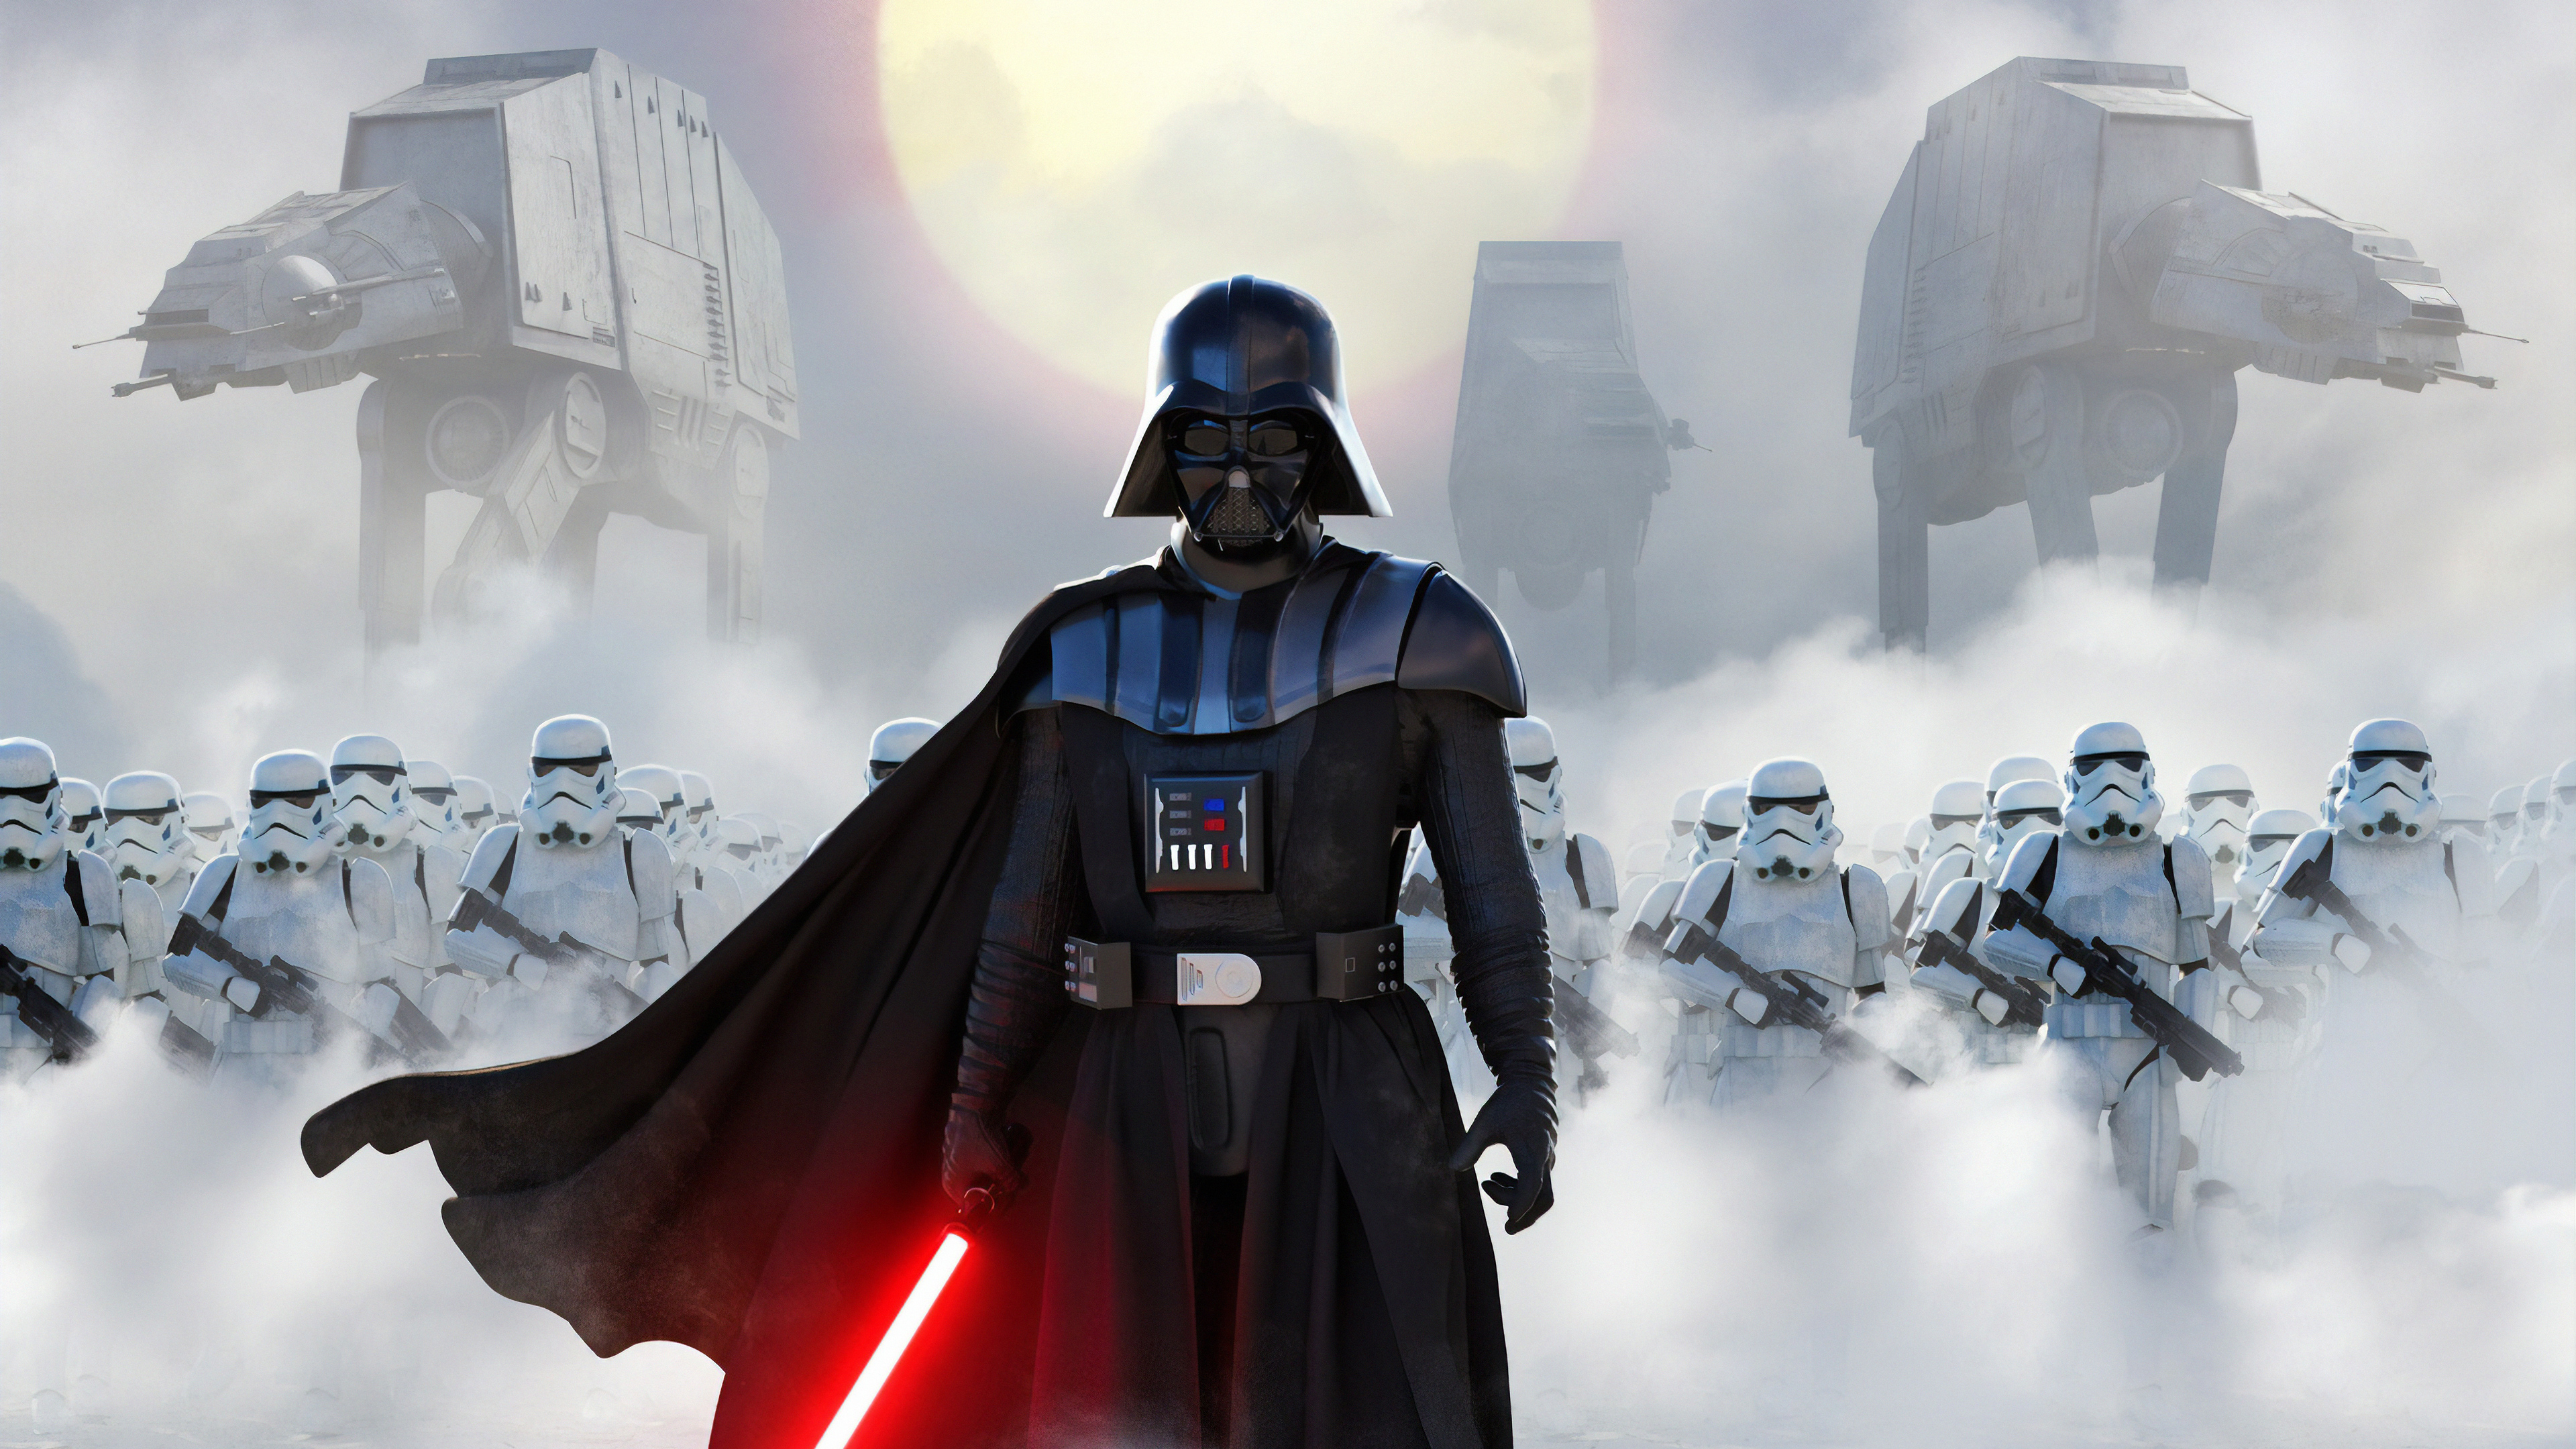 4k Darth Vader Hd Artist 4k Wallpapers Images Backgrounds Photos And Pictures